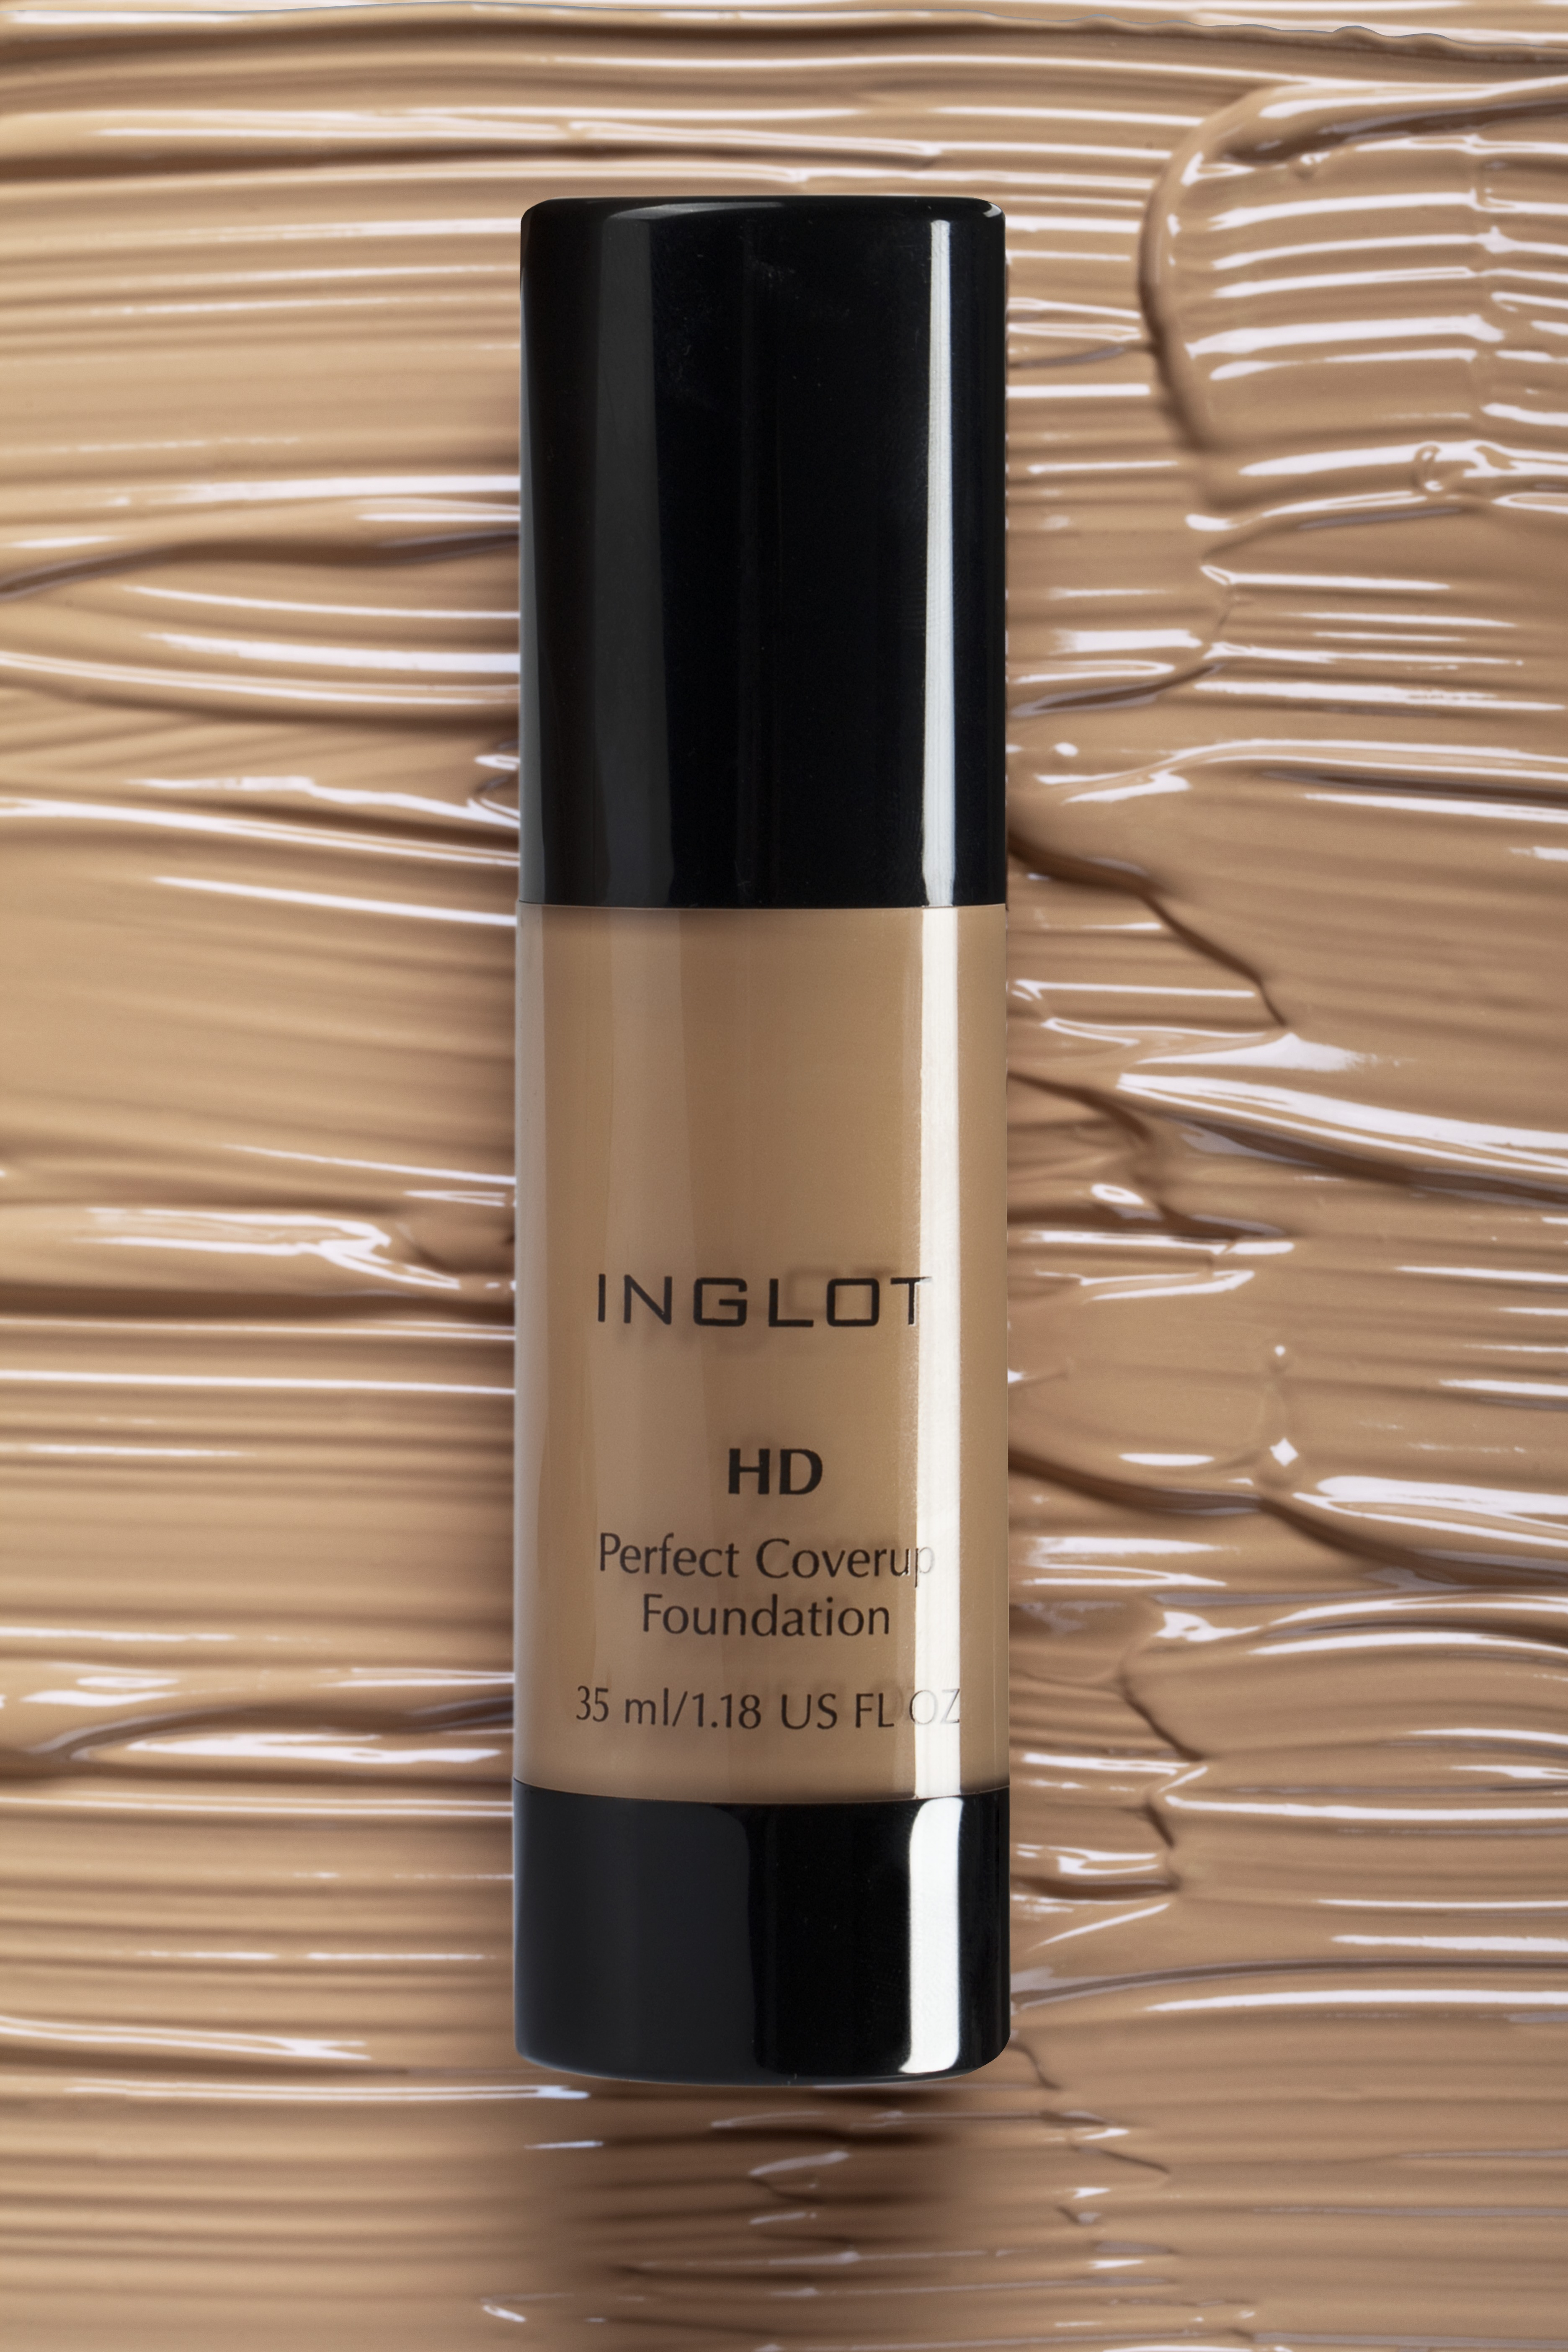 hd perfect coverup foundation Inglot